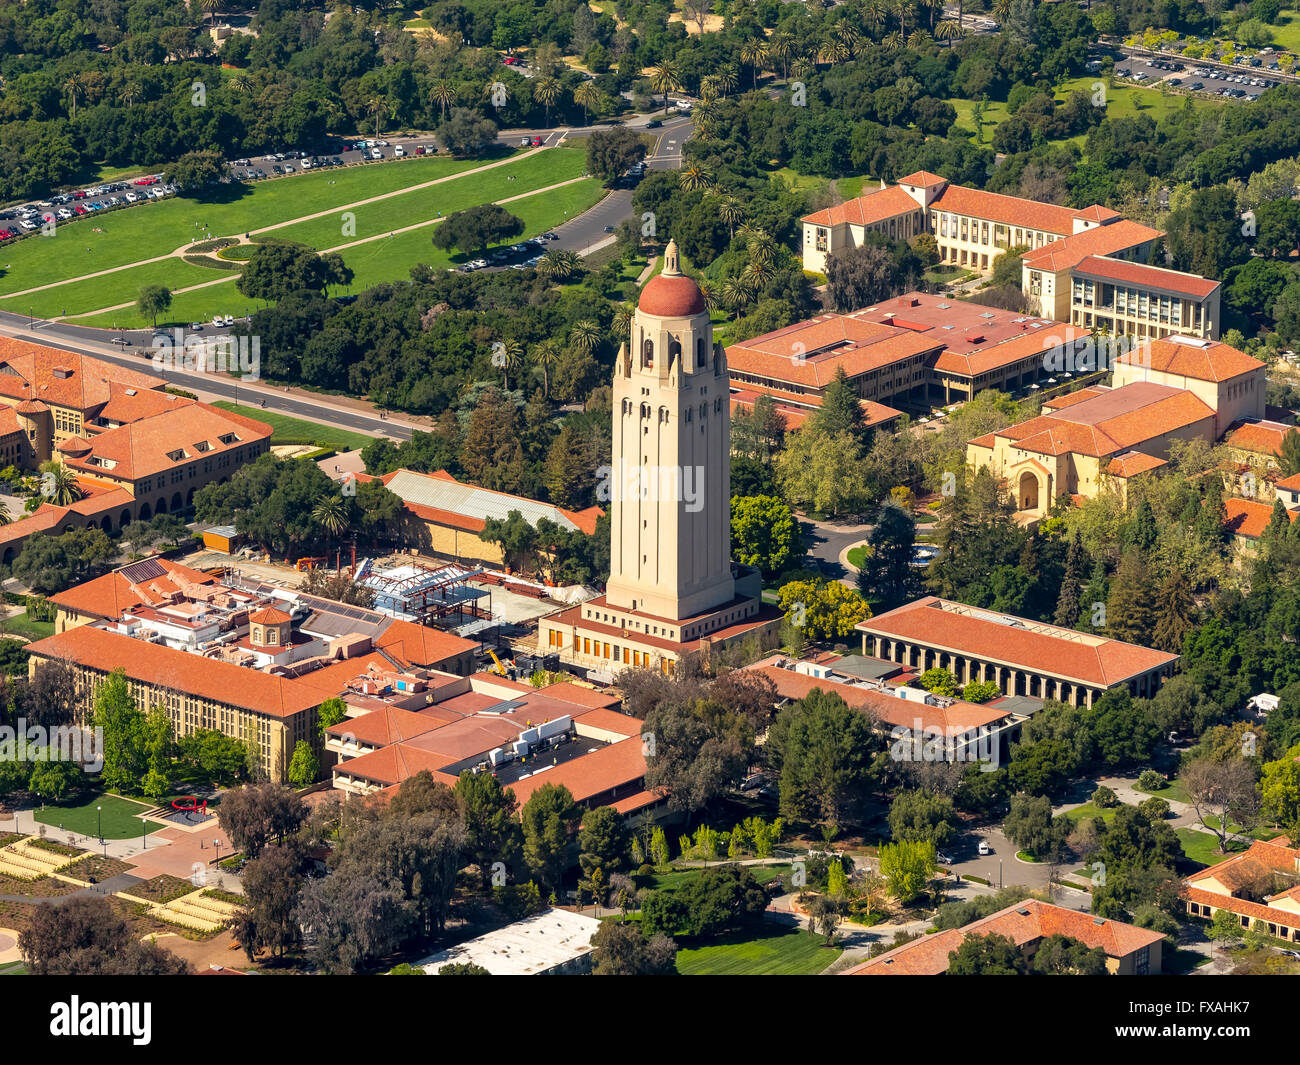 Oct 02, · Stanford University is worth a visit even if you aren't a student or researcher. It is marked by wonderful buildings in a beautiful, peaceful setting. Avail yourself of 5/5(K).